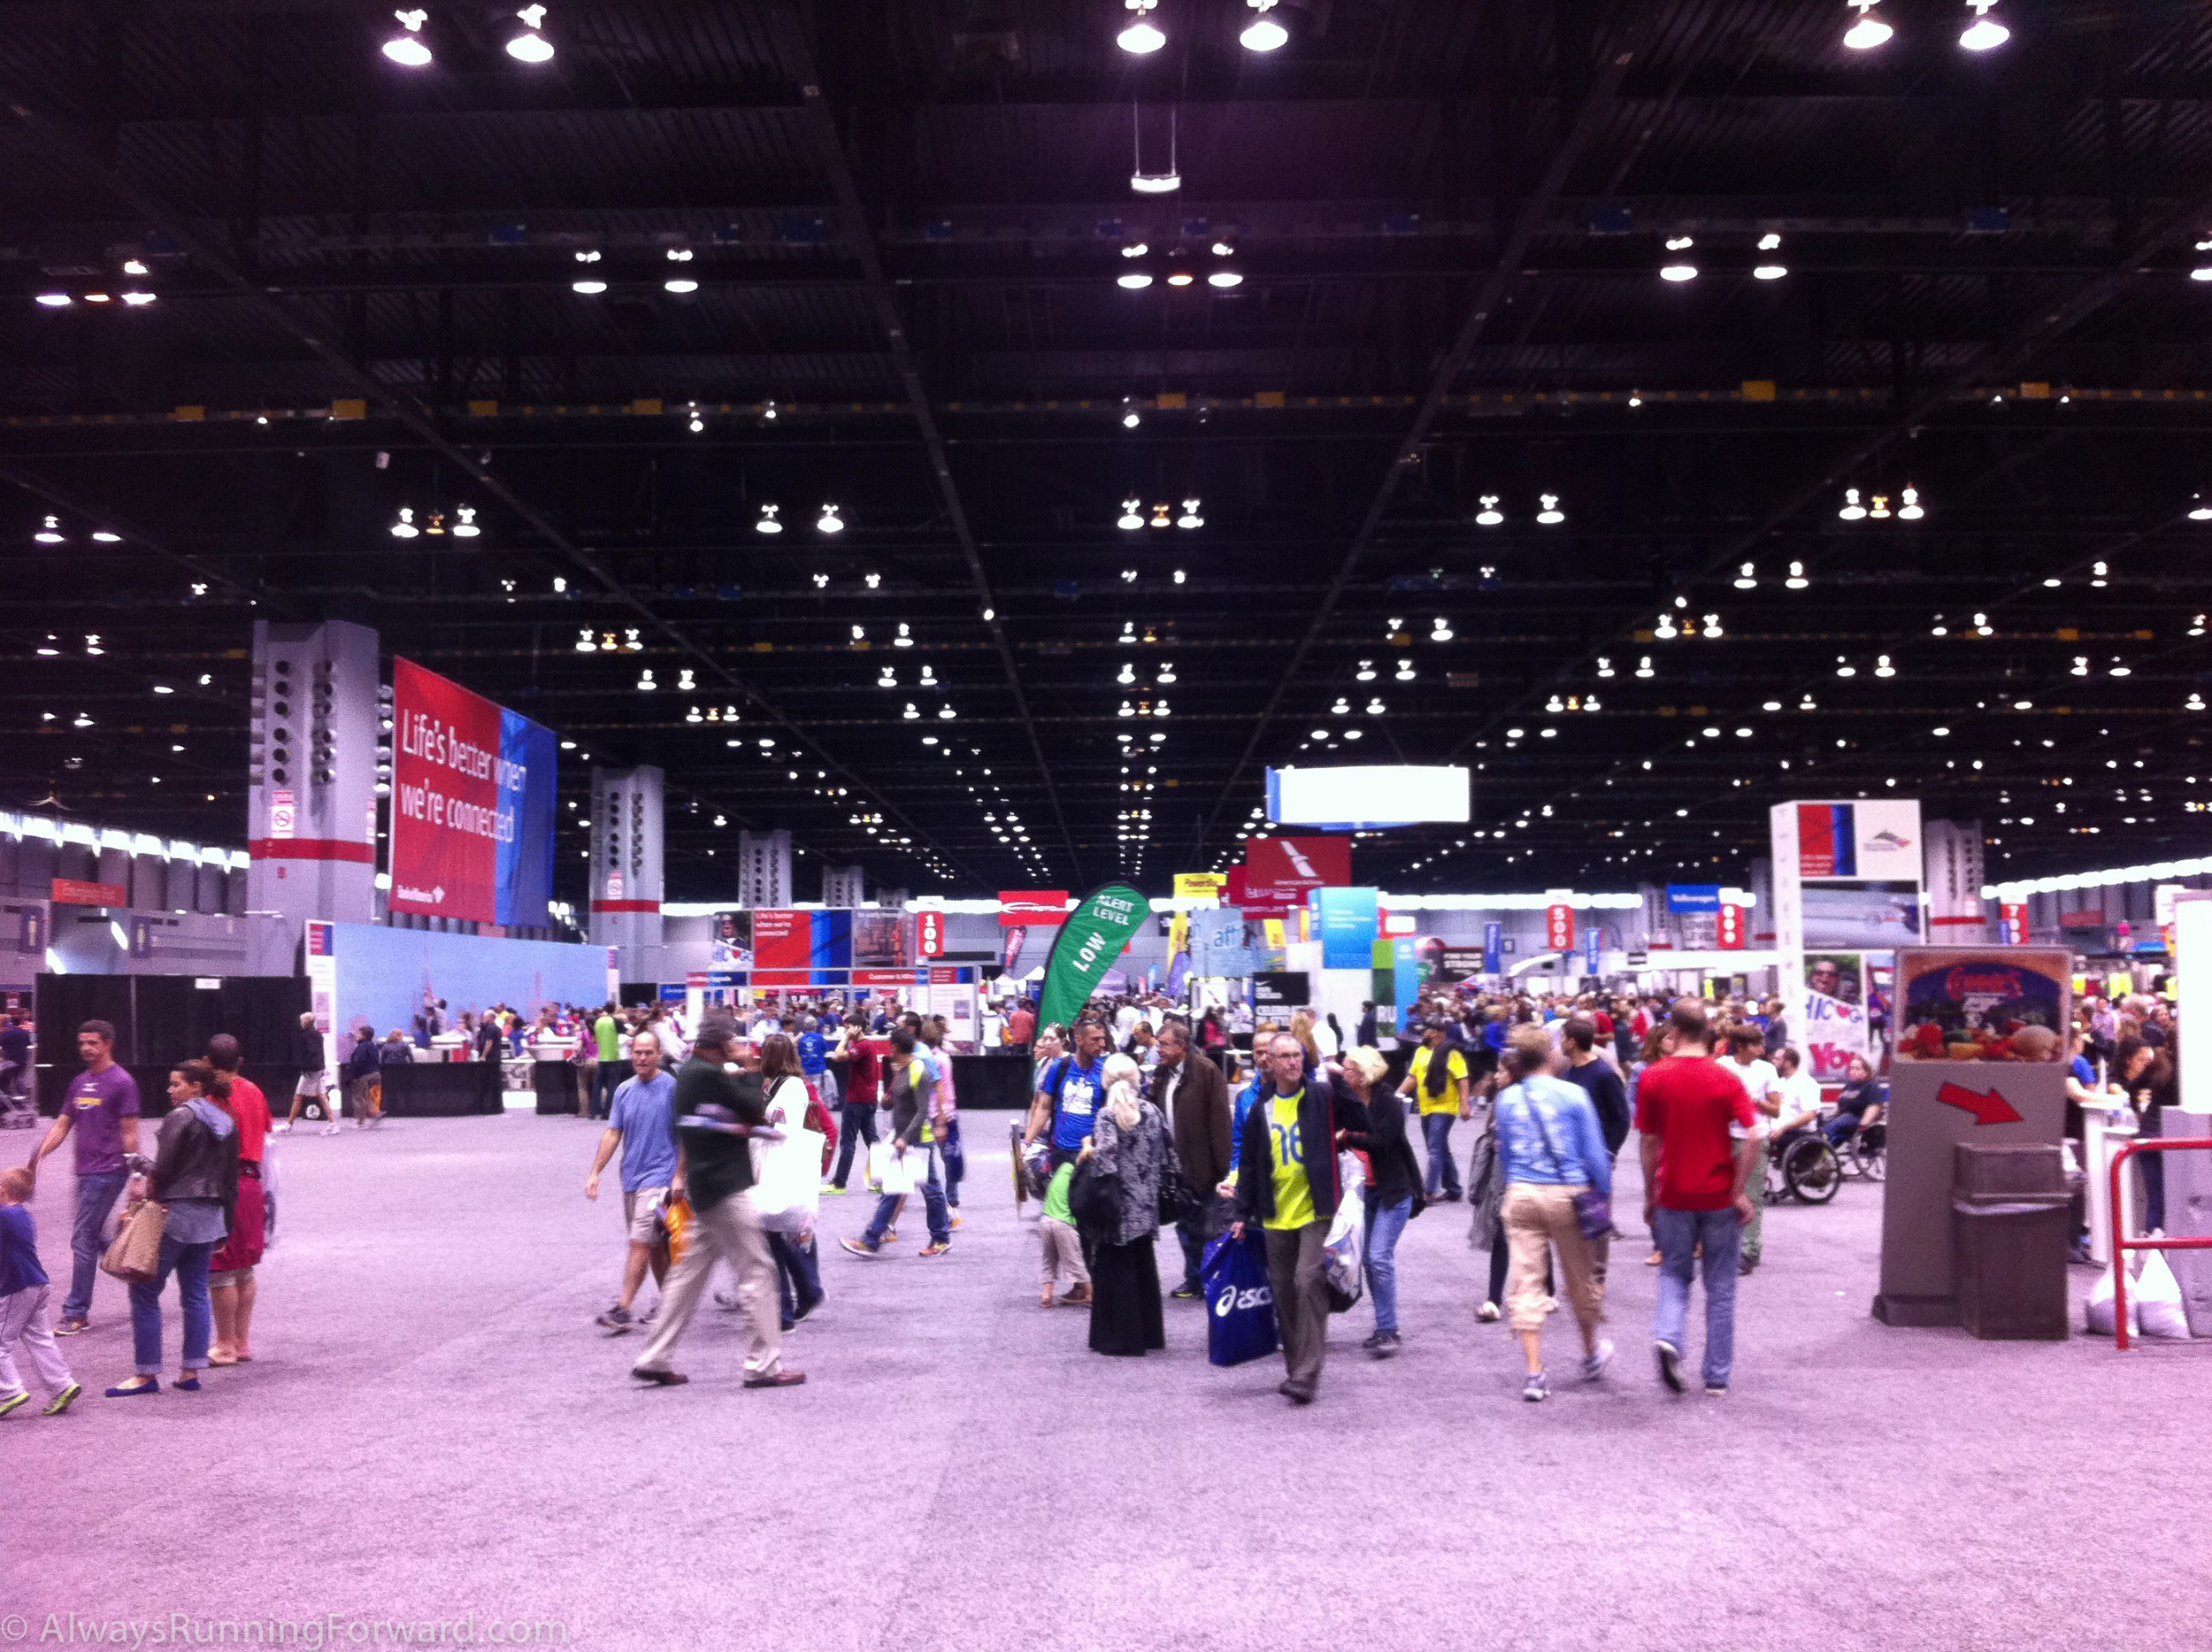 The adult toy expo was breaking attendance records this year.